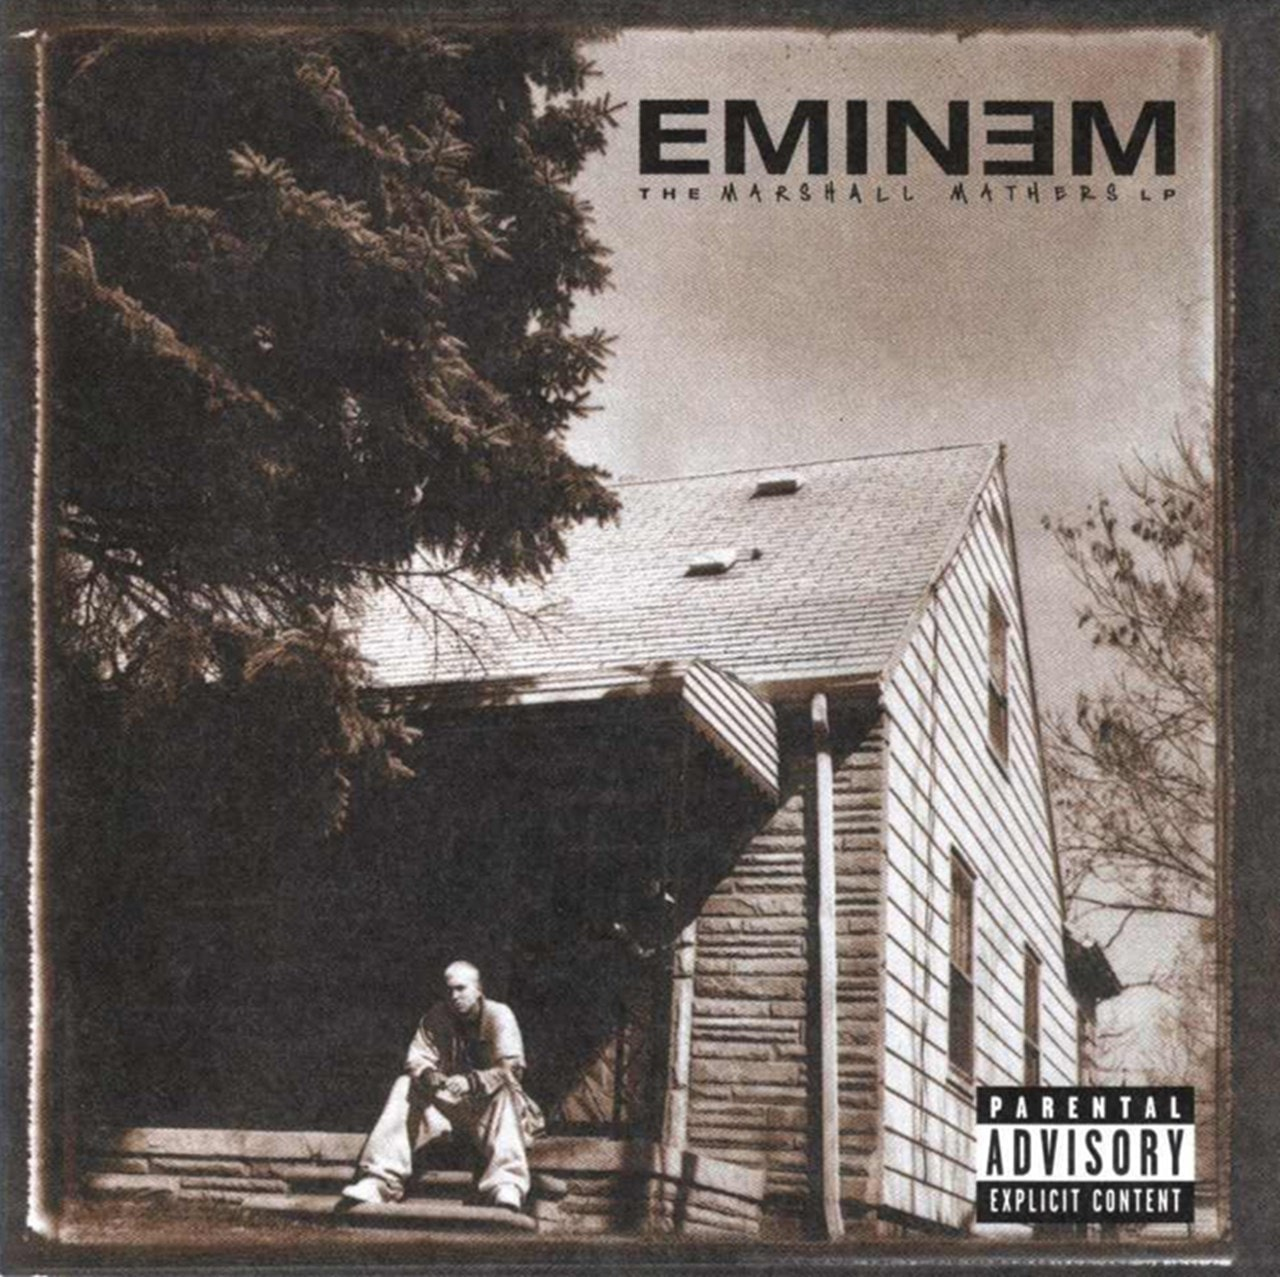 The Marshall Mathers LP - 1